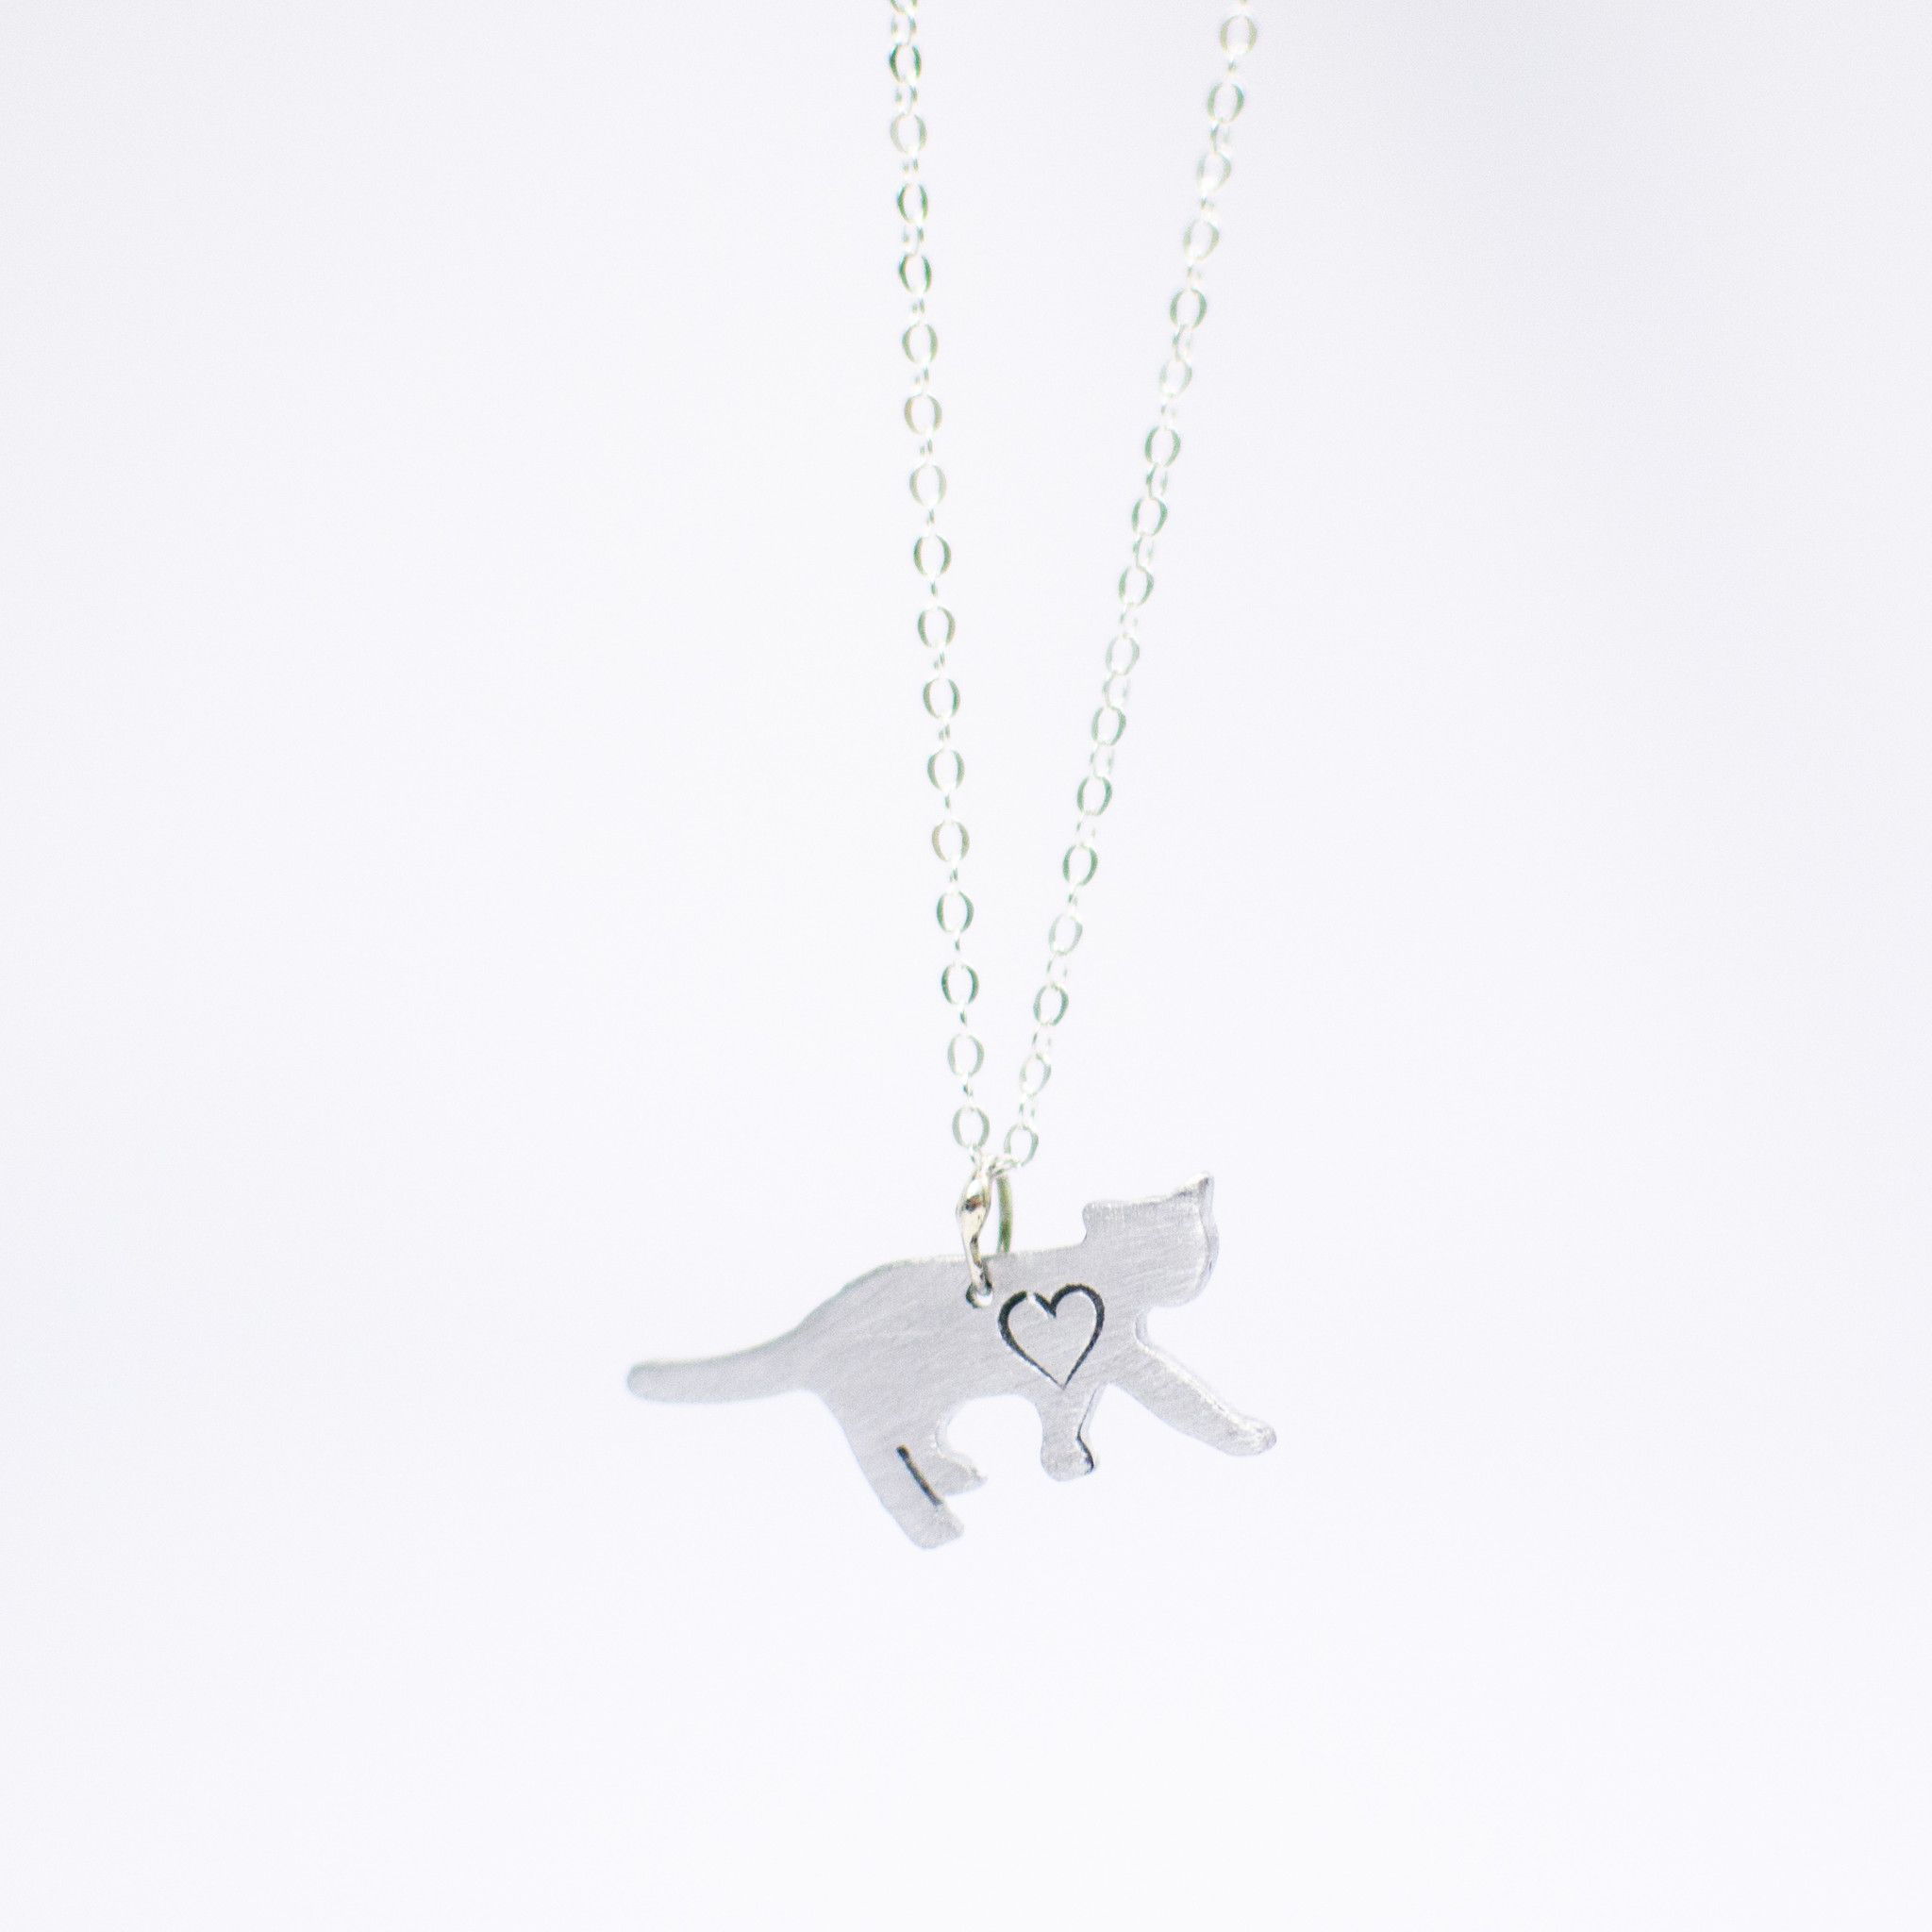 Christy Robinson Designs 'Mini Cat with Heart Necklace'